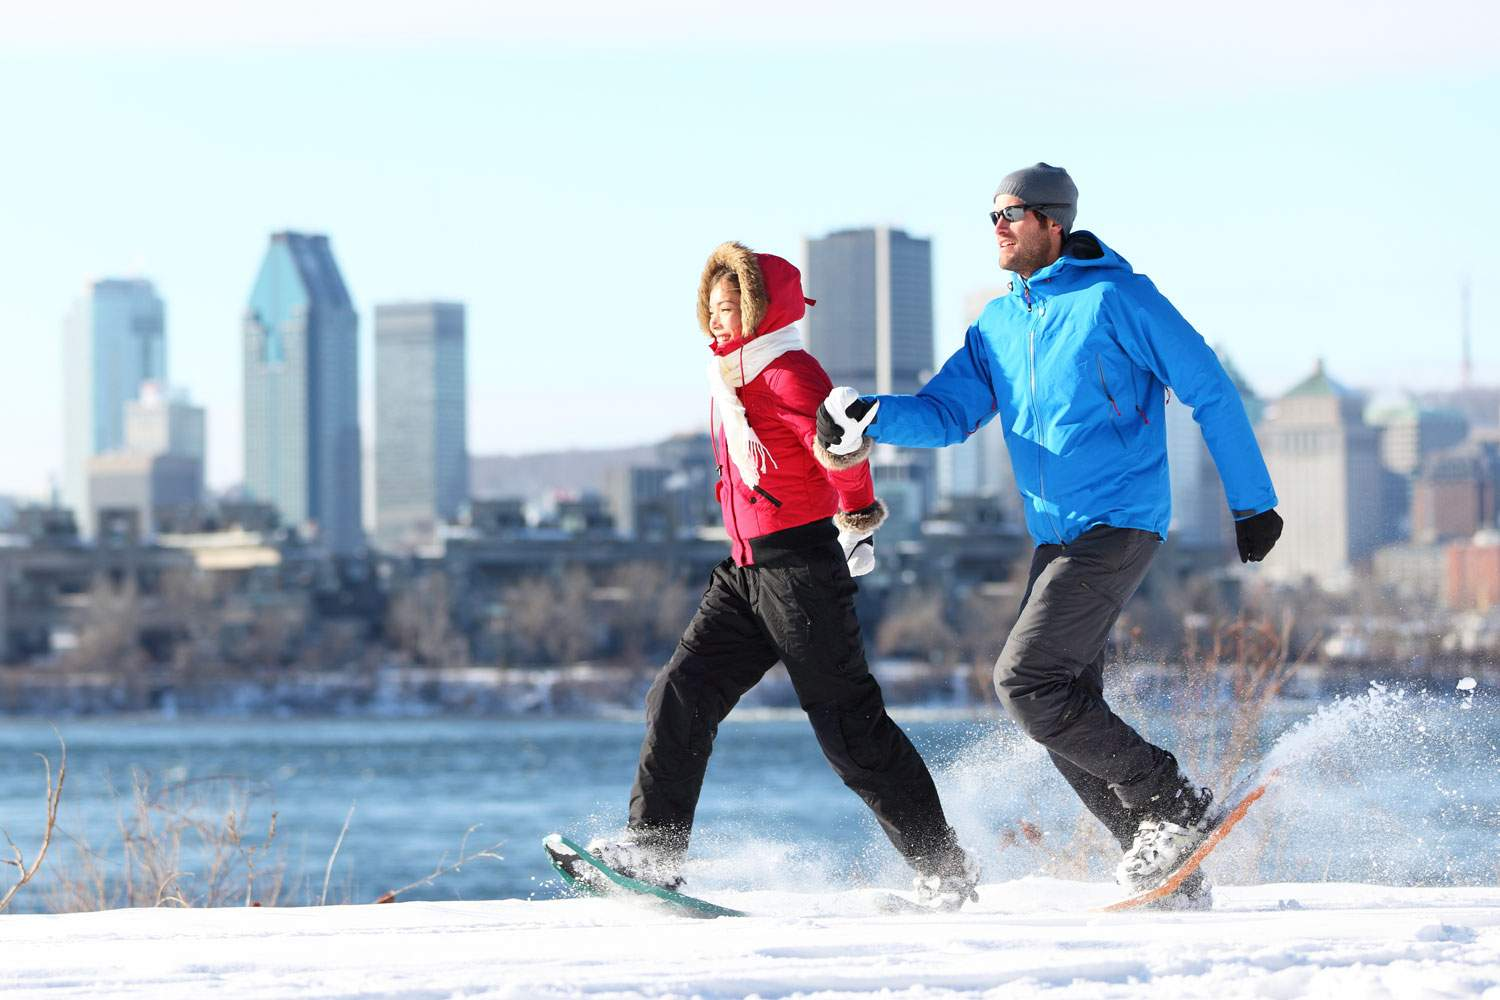 montreal-snowshoe-winter-sports-canal